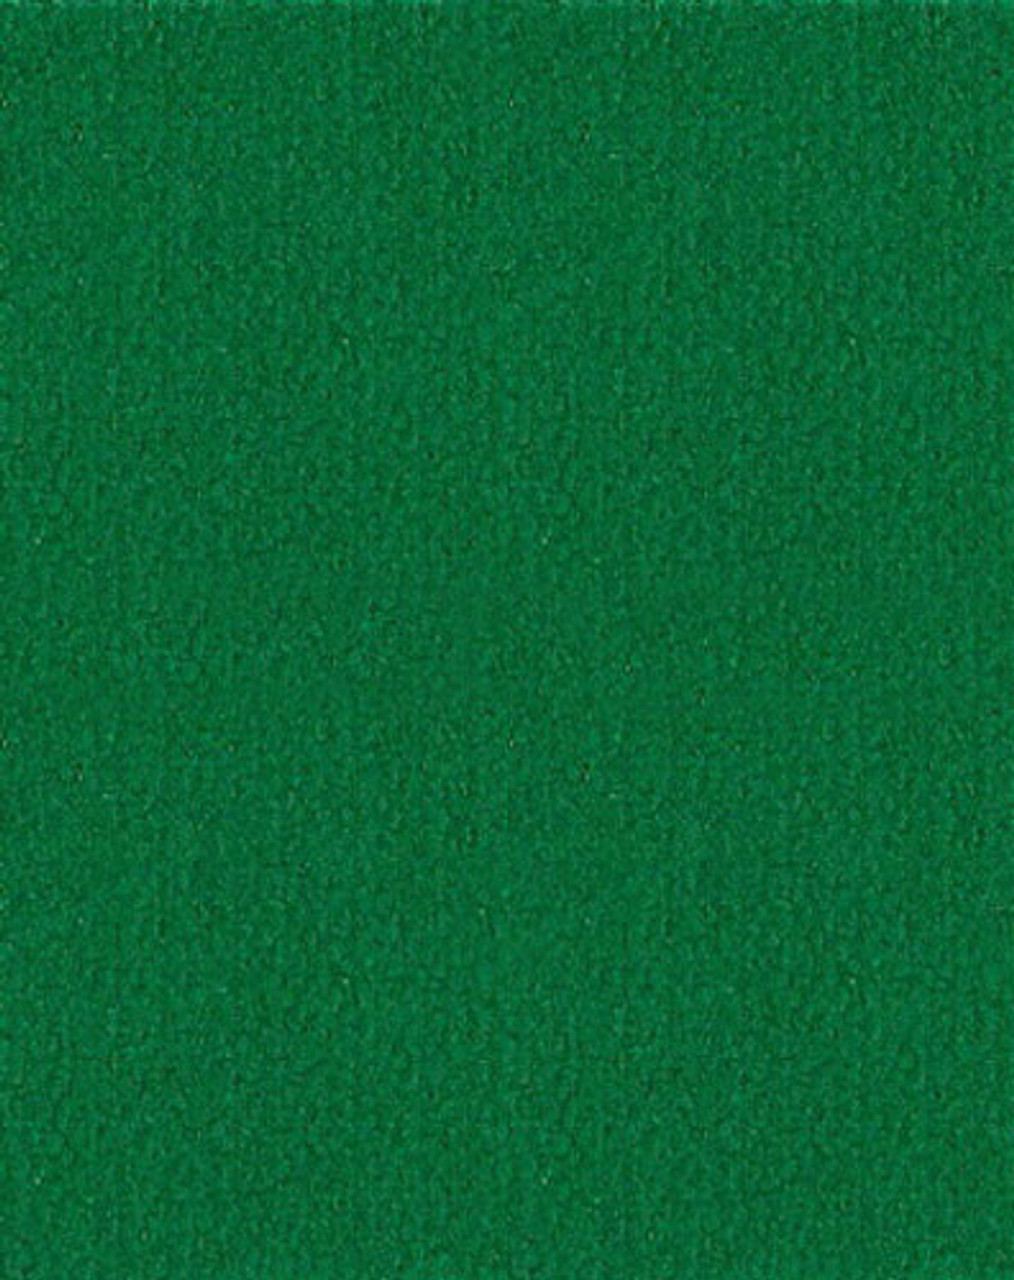 Invitational pool table felt teflon championship - Pool table green felt ...